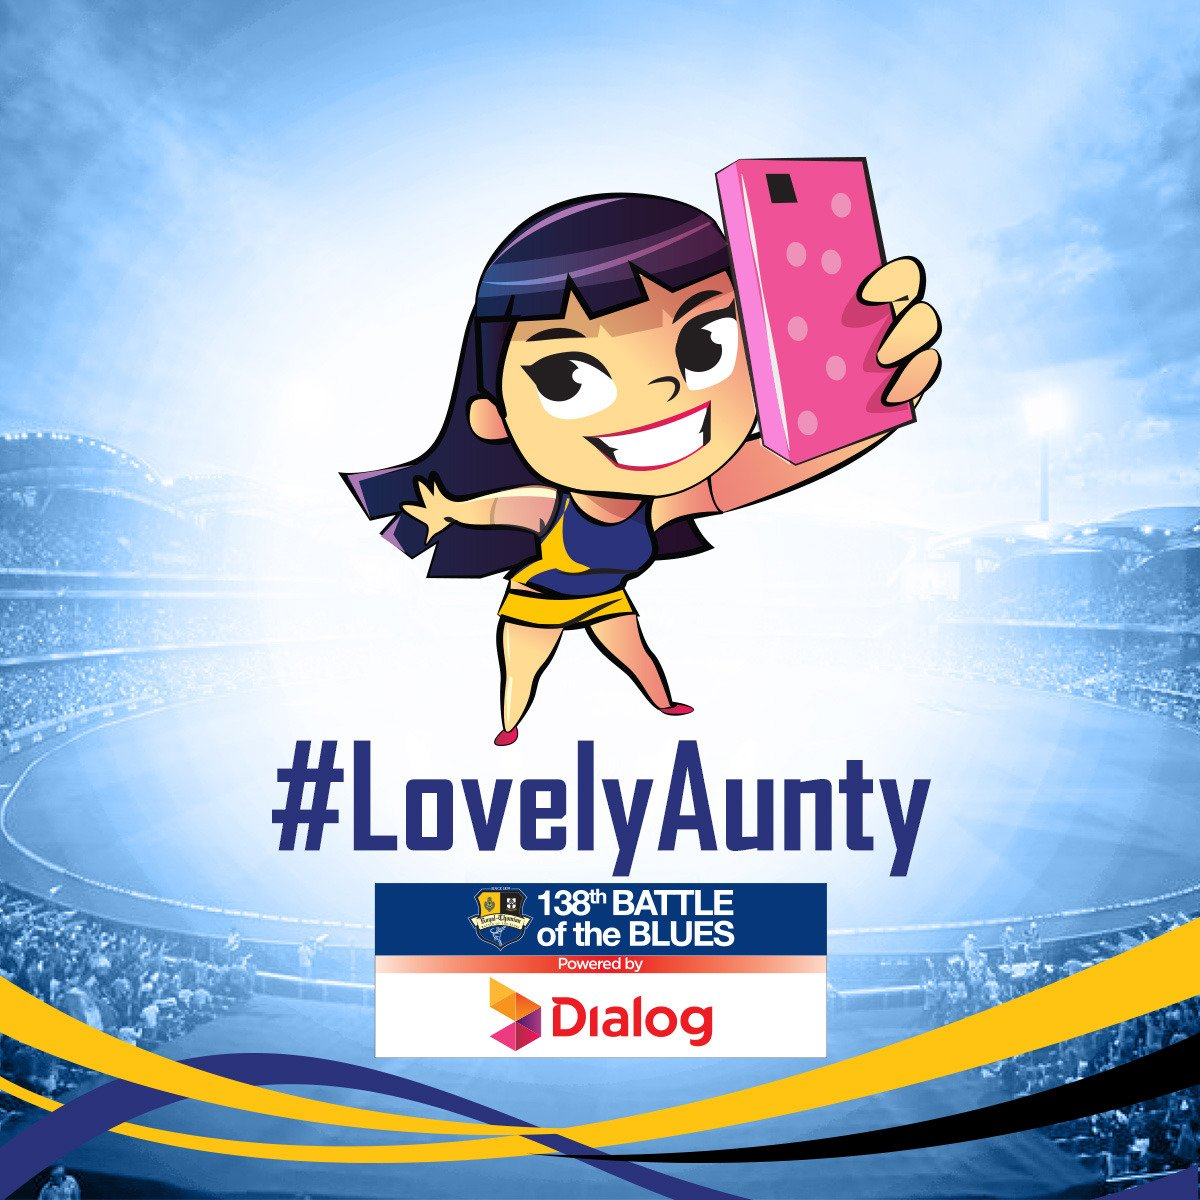 To all the lovely Aunties rocking @ #RoyTho2017! Upload a fun picture of yours with #LovelyAunty & stand a chance to WIN amazing gifts